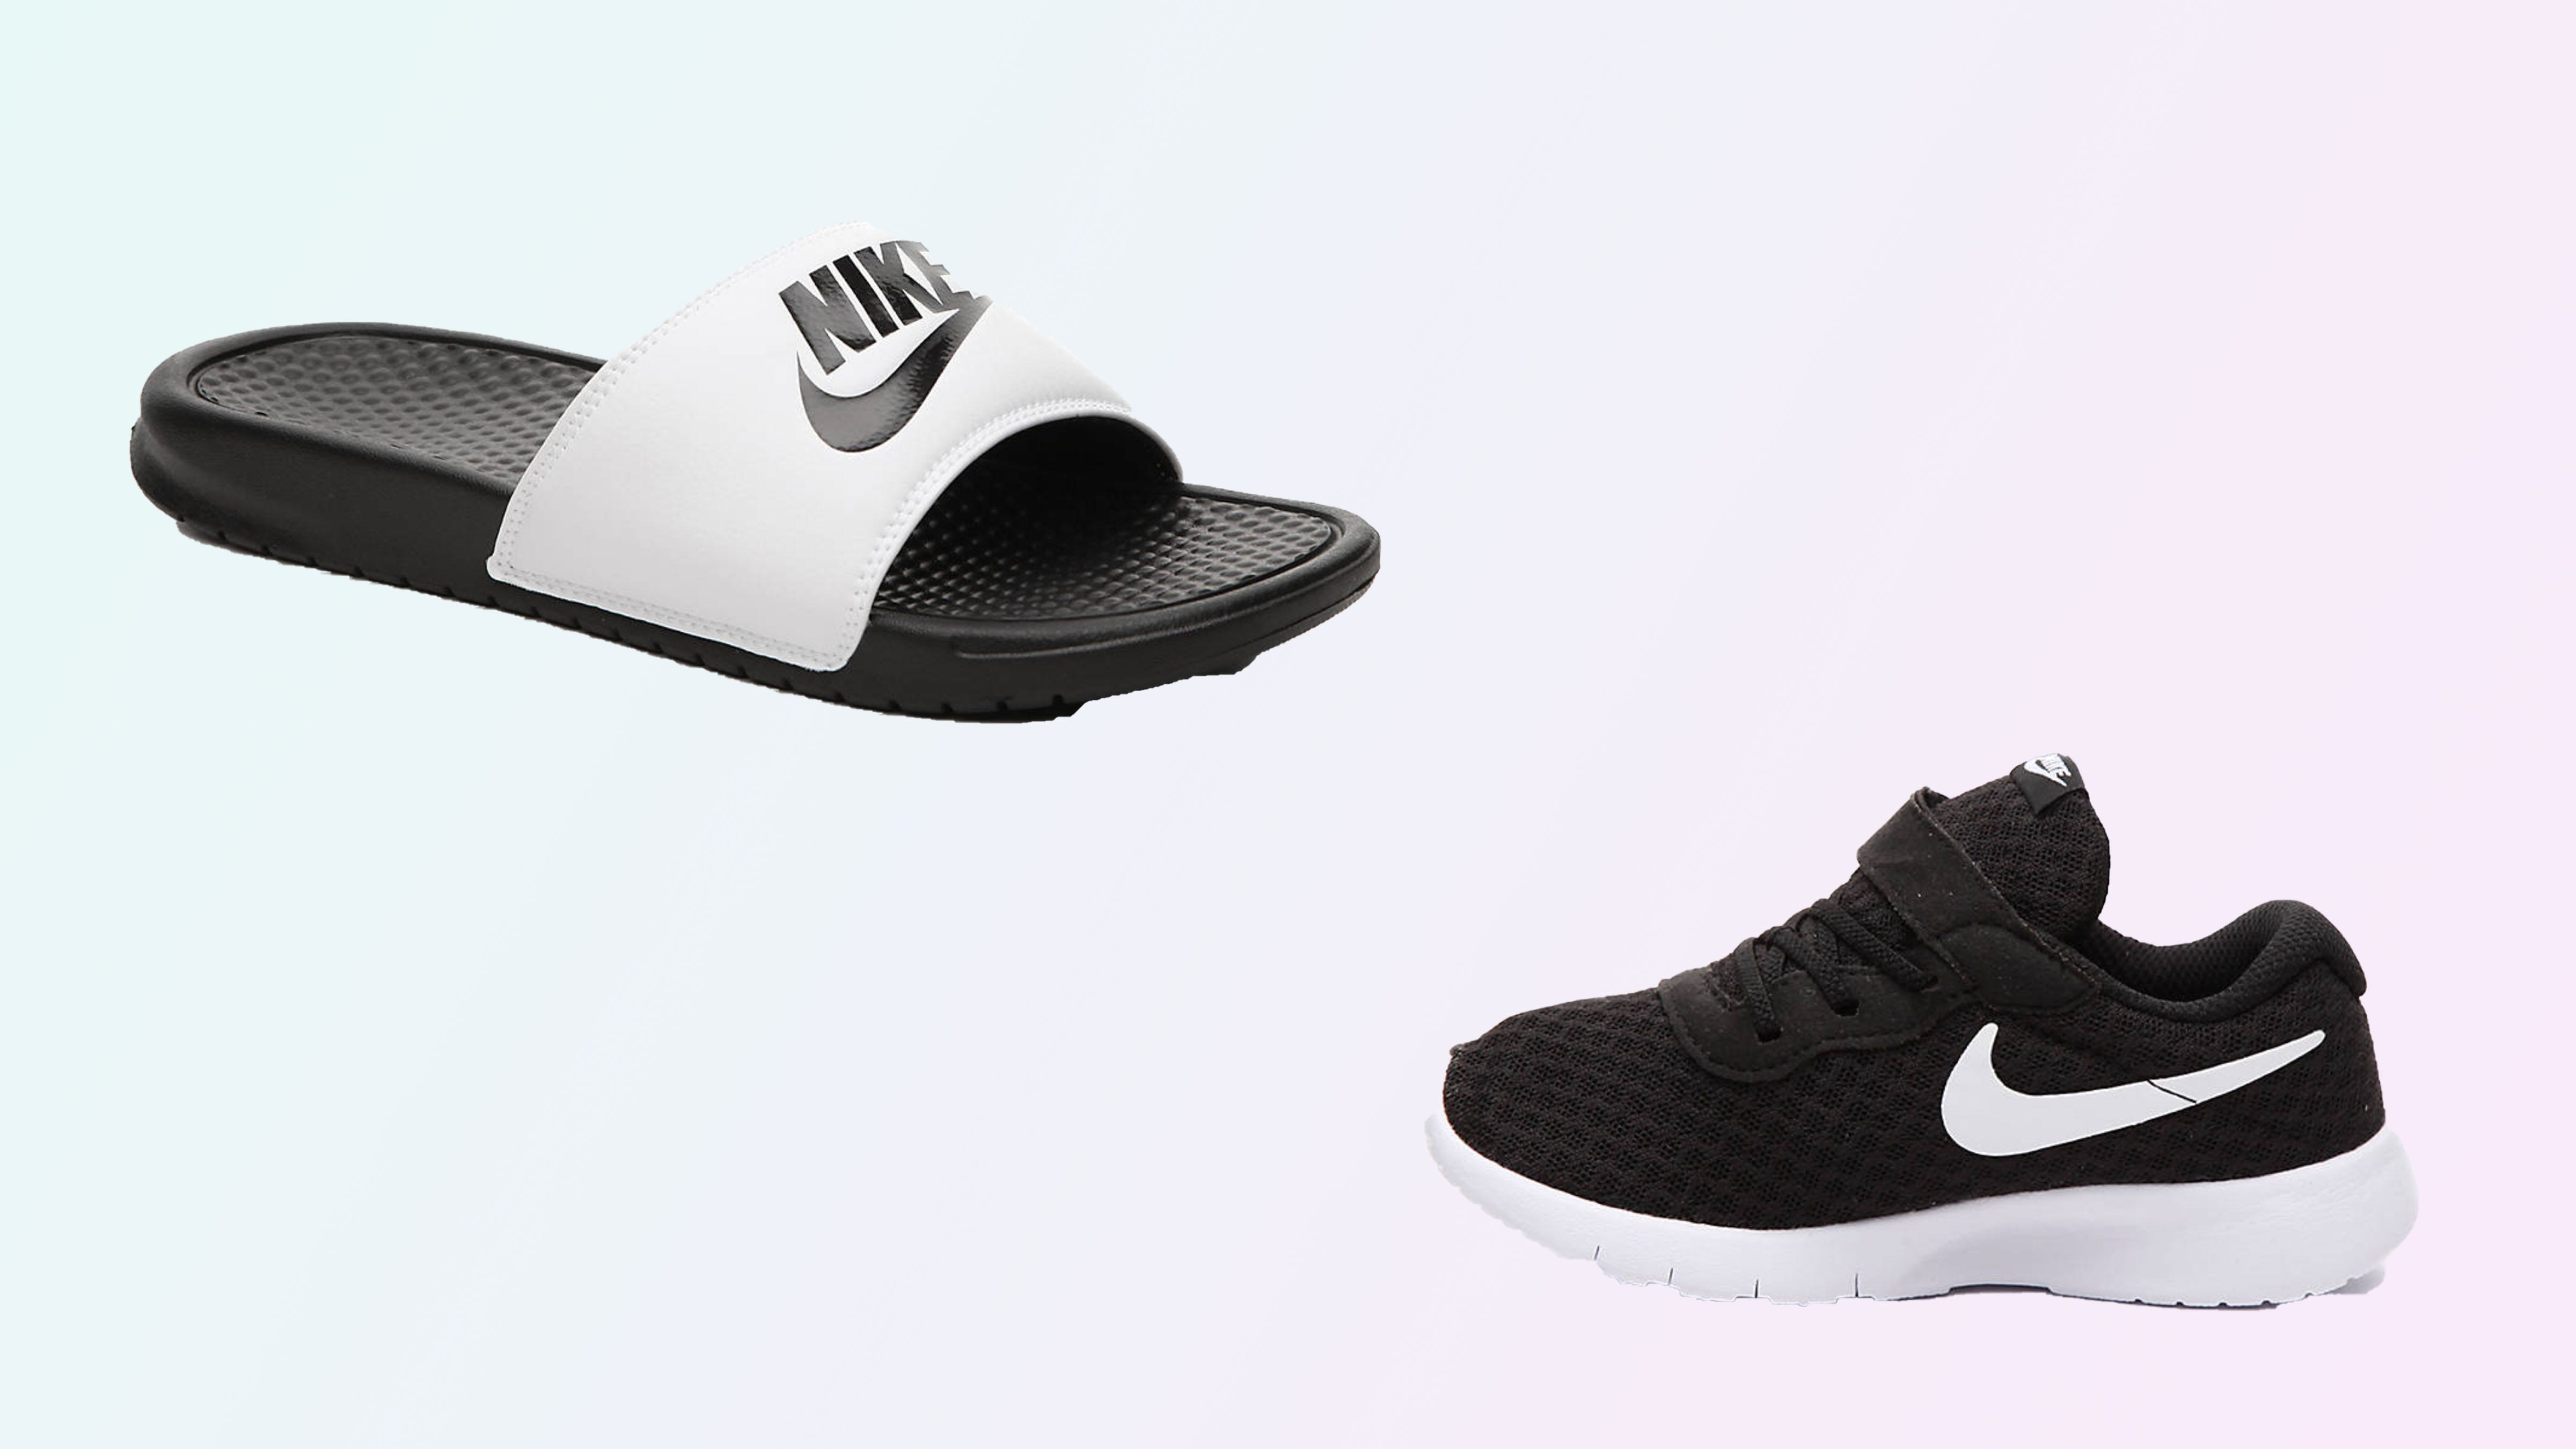 DSW shoes sale: Save on Nike sandals